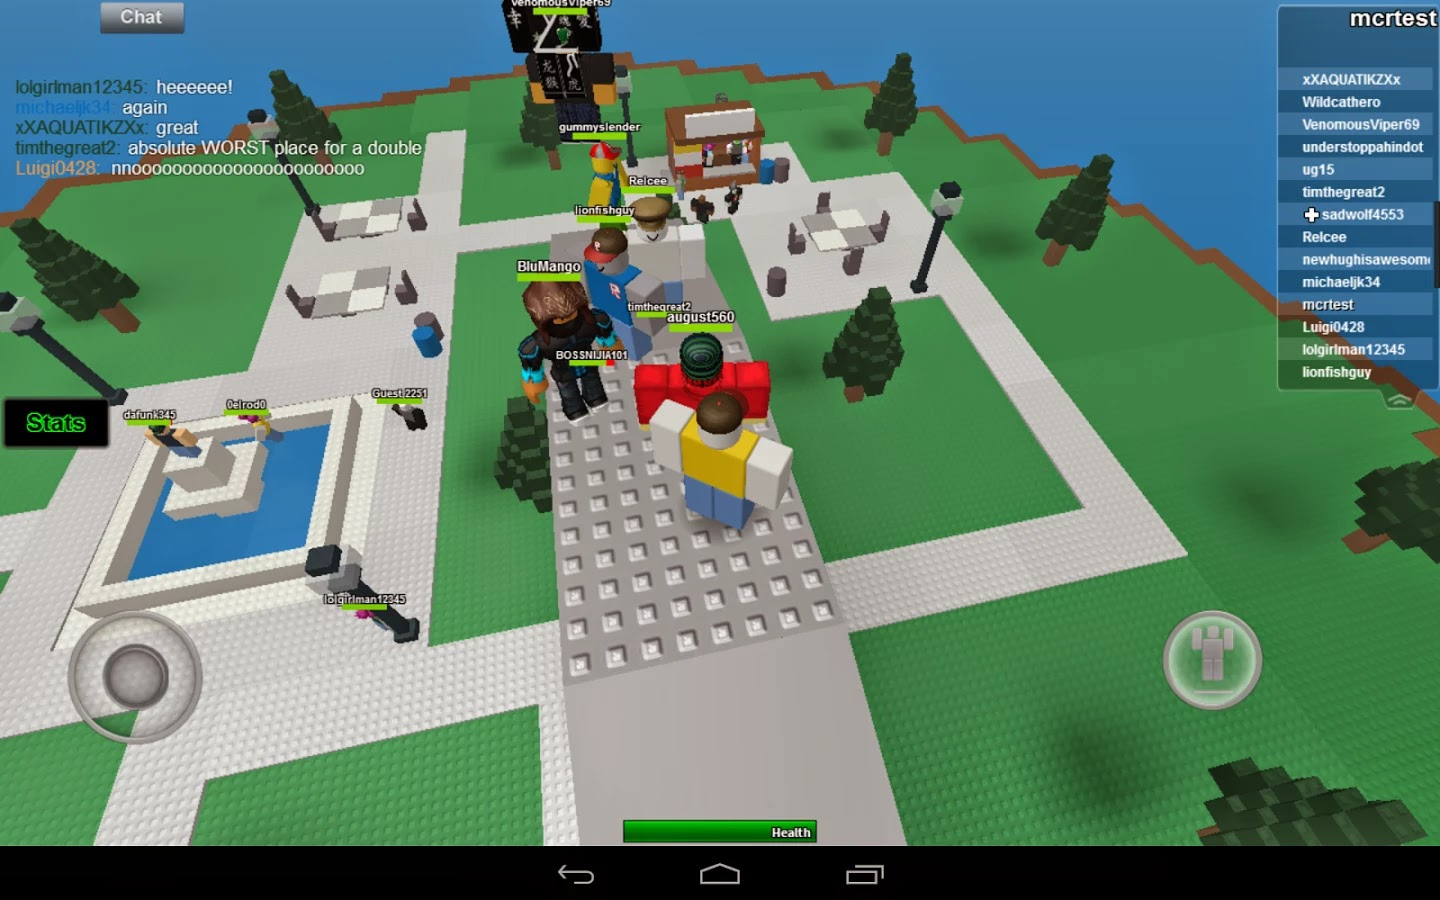 ROBLOX | Download APK For Free (Android Apps)